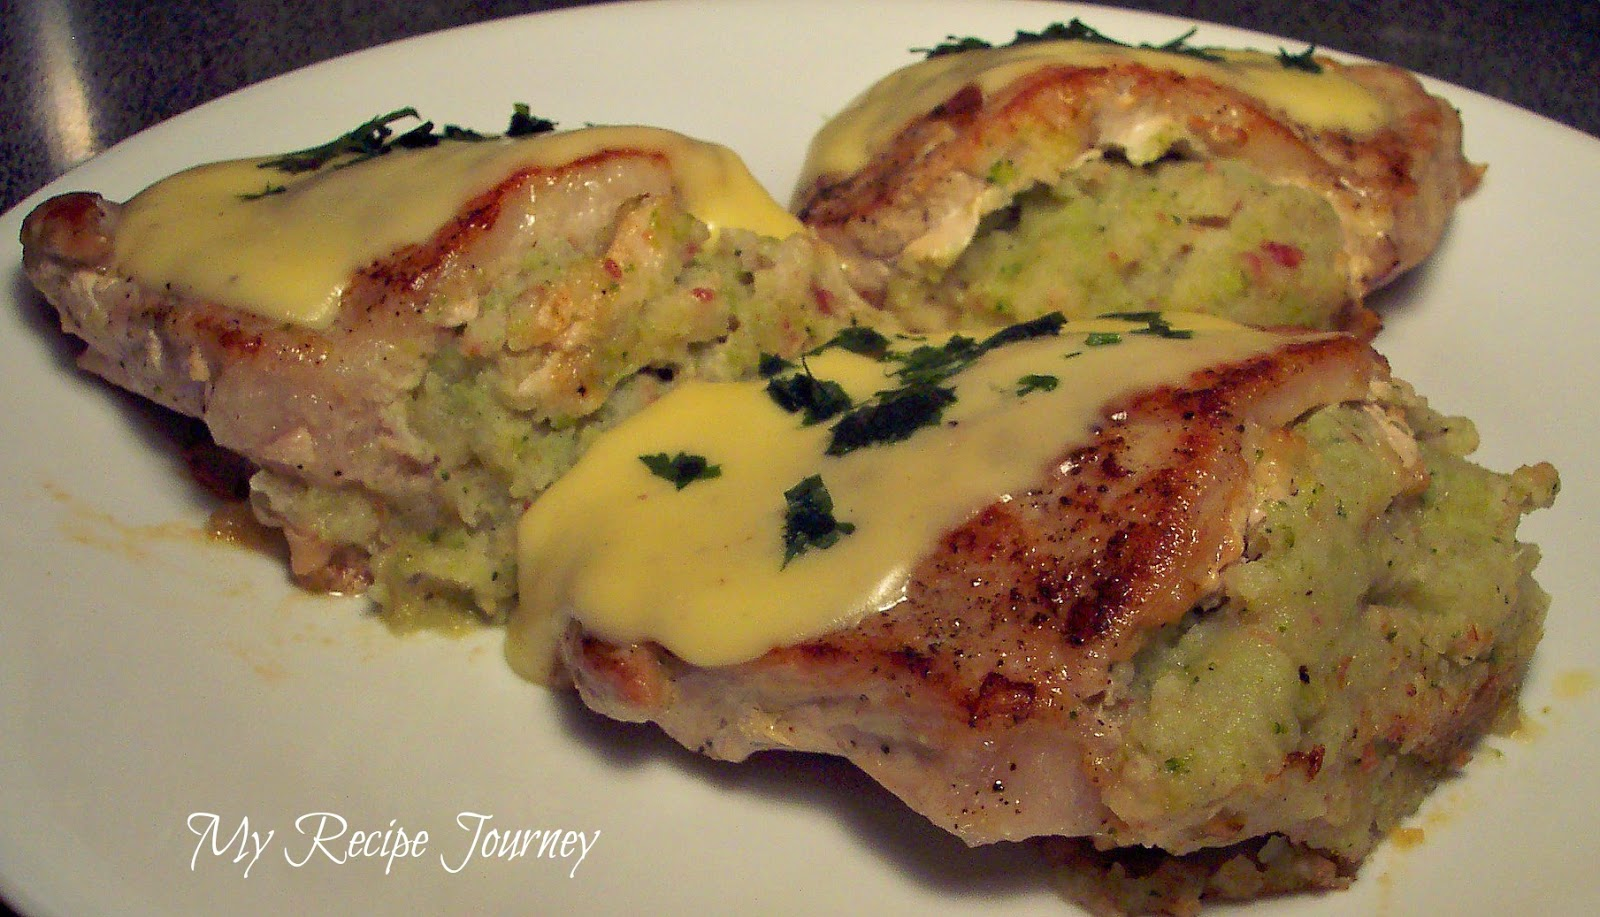 Creamy Vegetable Stuffed Pork Chops Topped with a Light Cheese Sauce